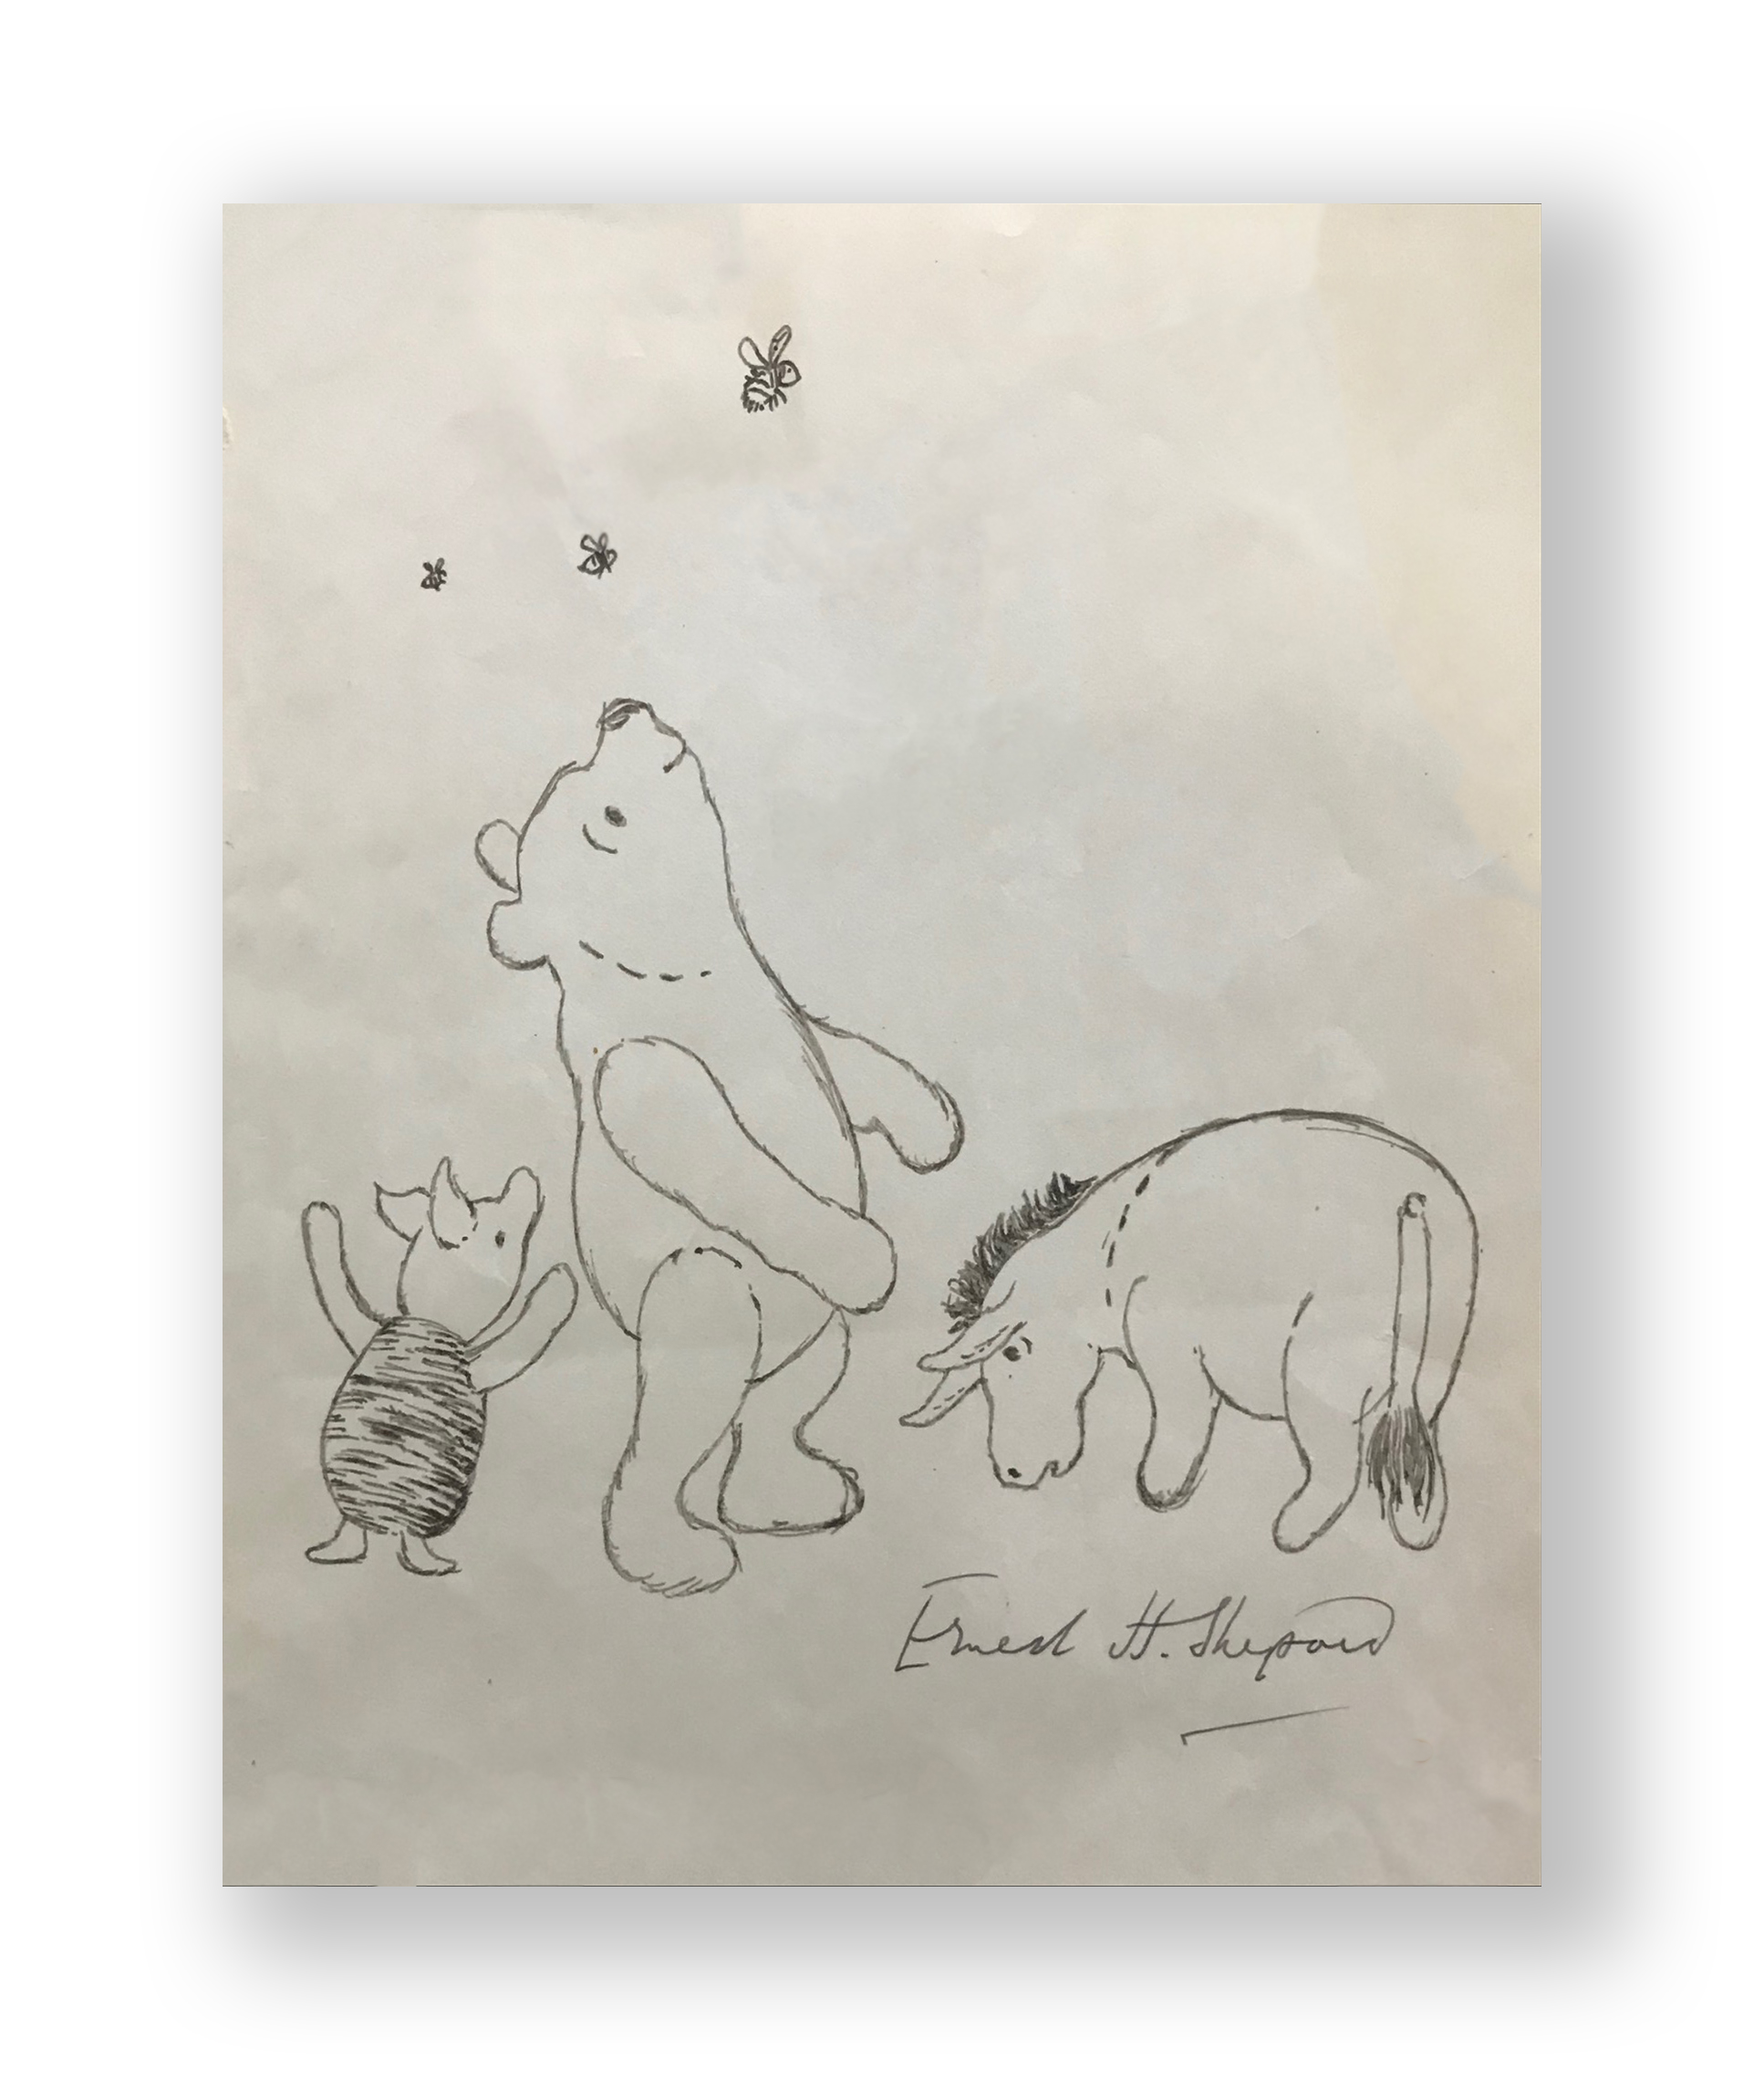 "E.H. Shepard  "" Bee Watching""  Winnie the Pooh and Friends  Original vintage illustration  Ink on paper  9 x 7 inches  Circa 1950's -1960's"